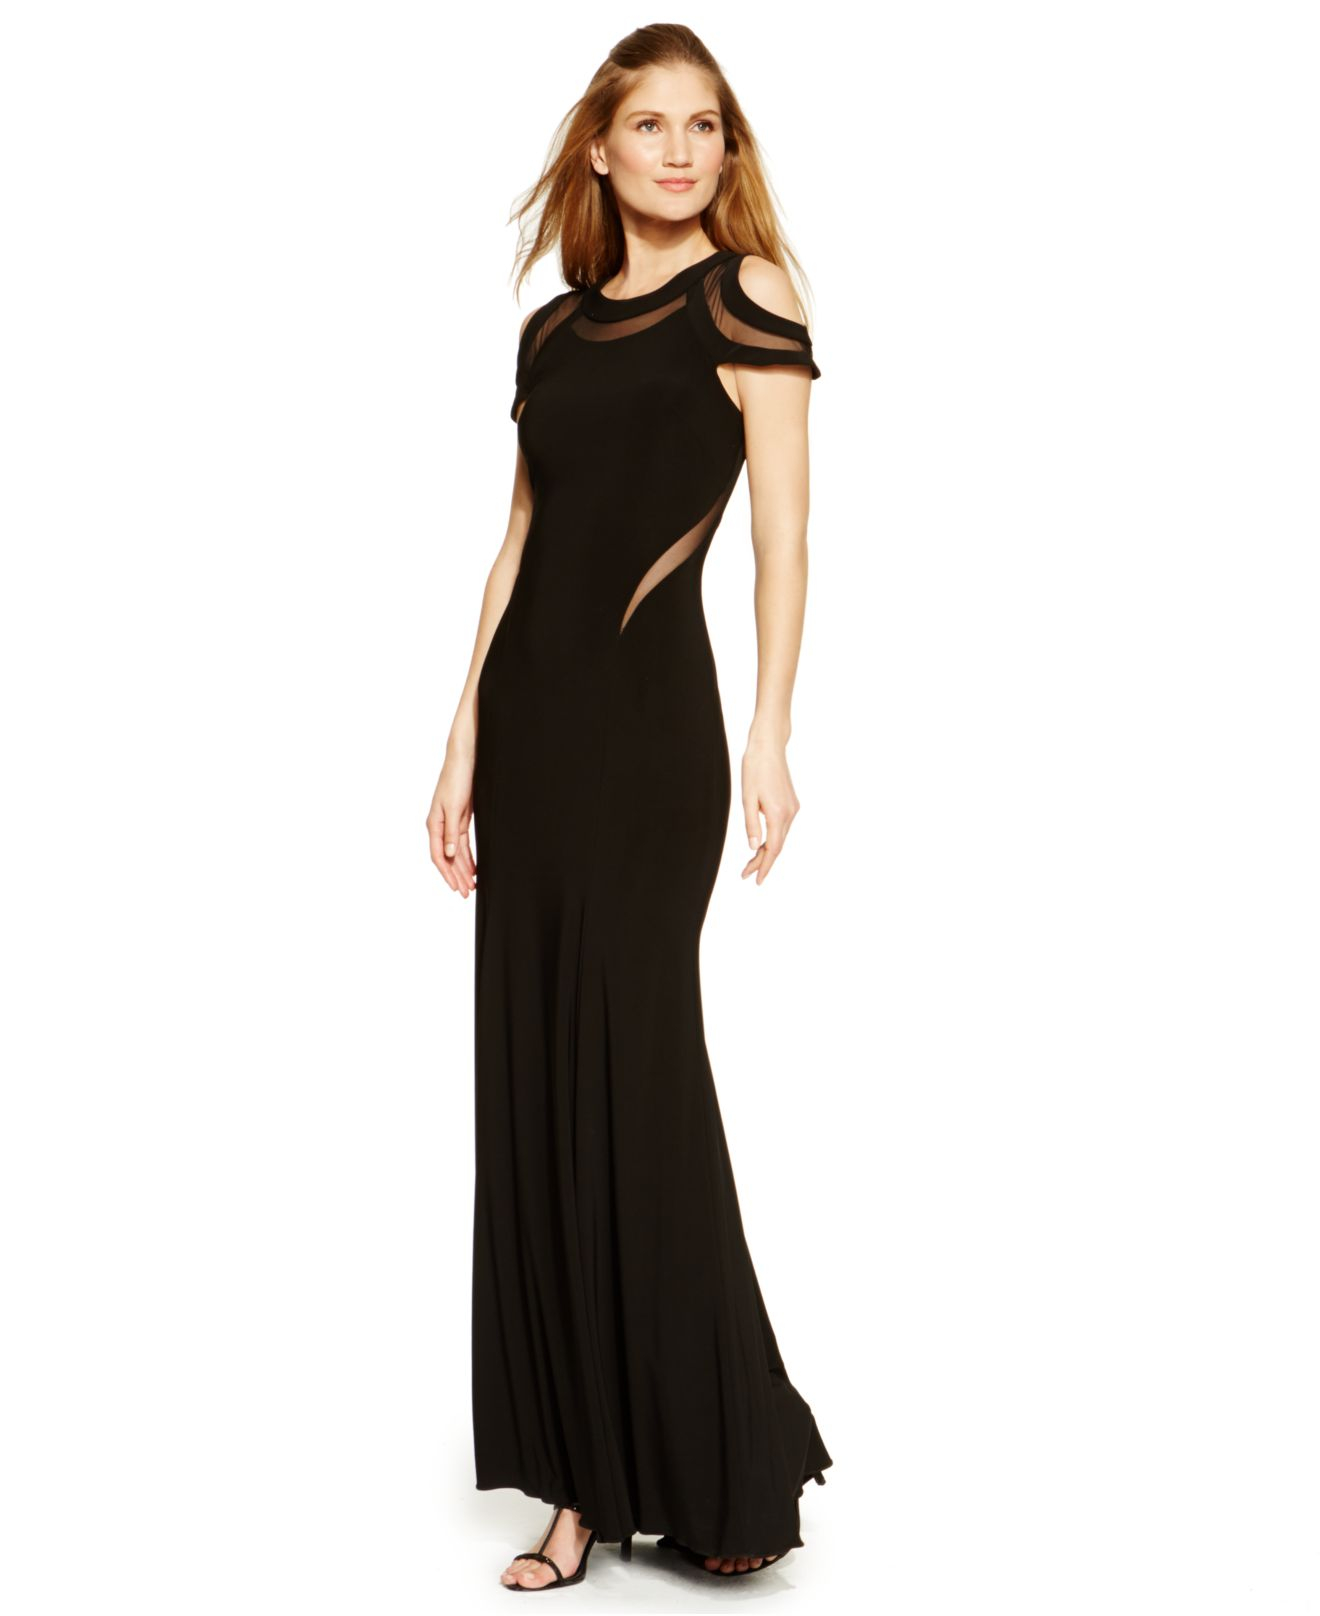 Xscape Sleeveless Glitter Lace Mermaid Gown | Dress images